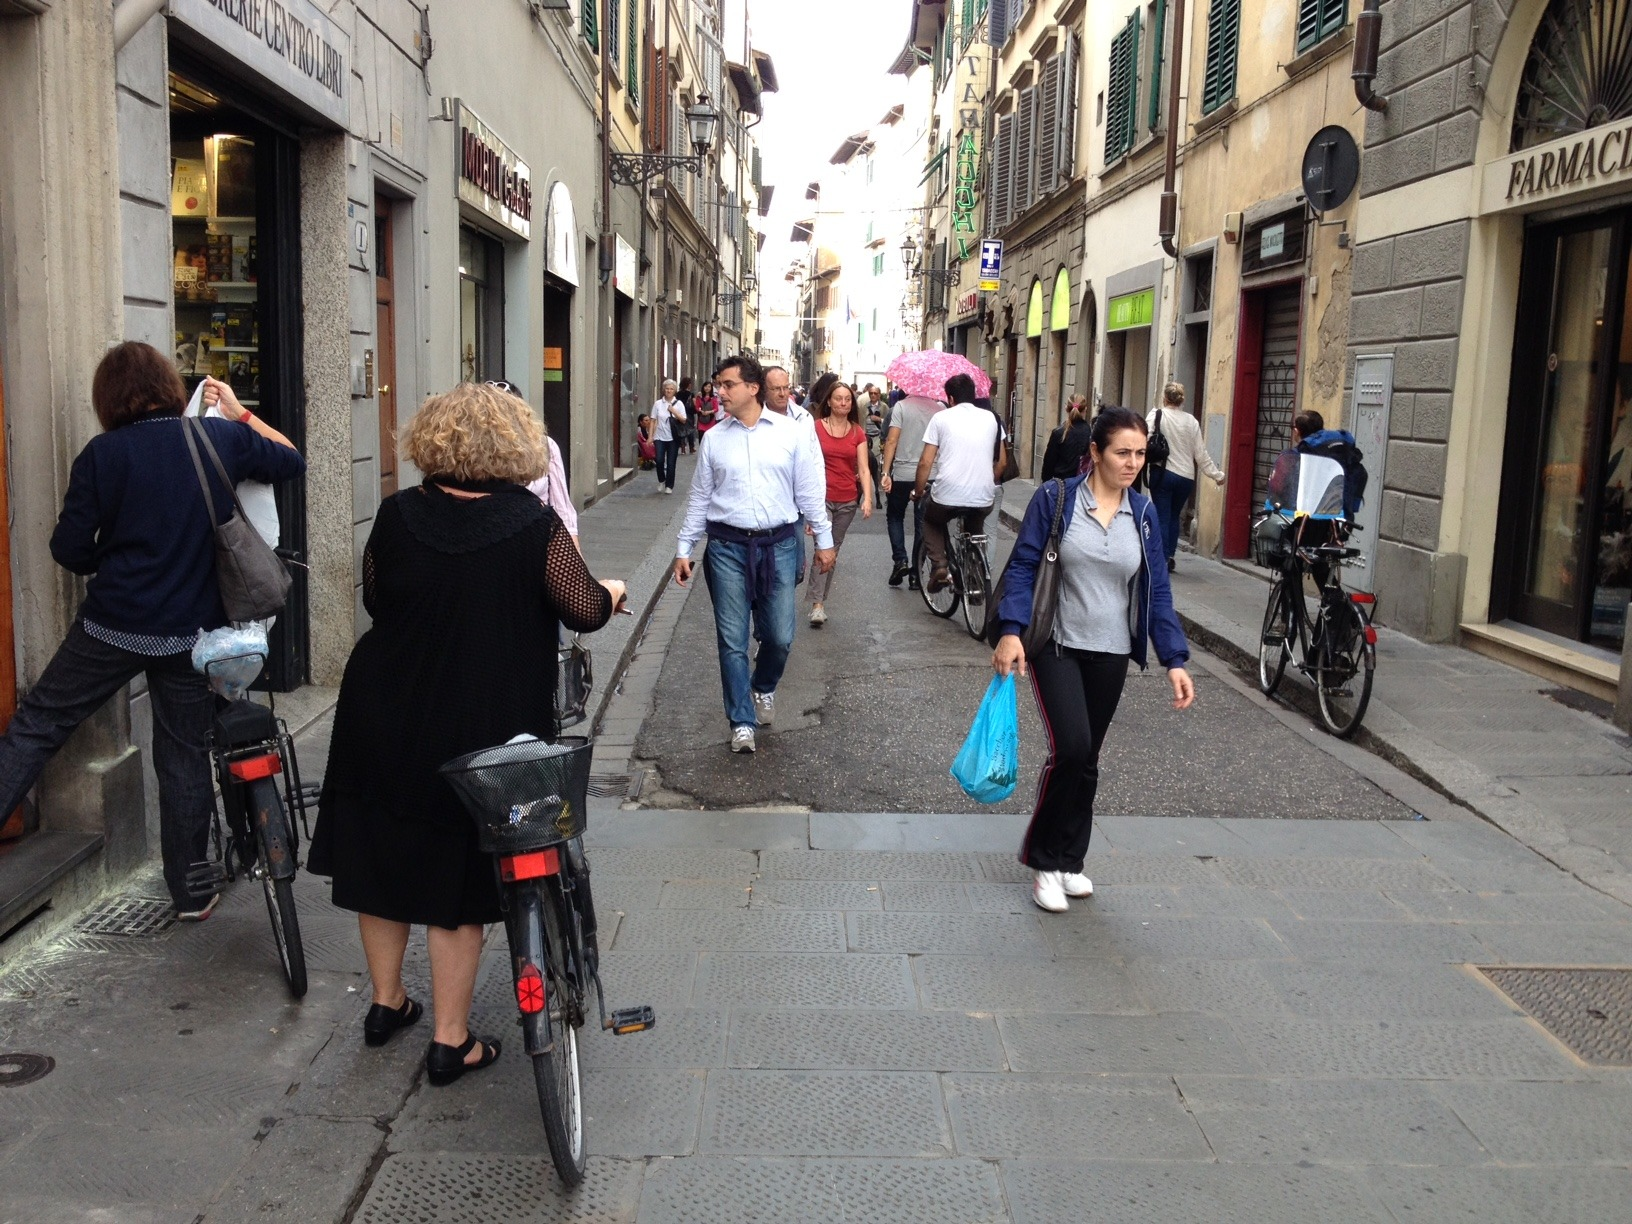 Urban living is about diversity? Young and old? Bikes and pedestrians? Residents and retail?